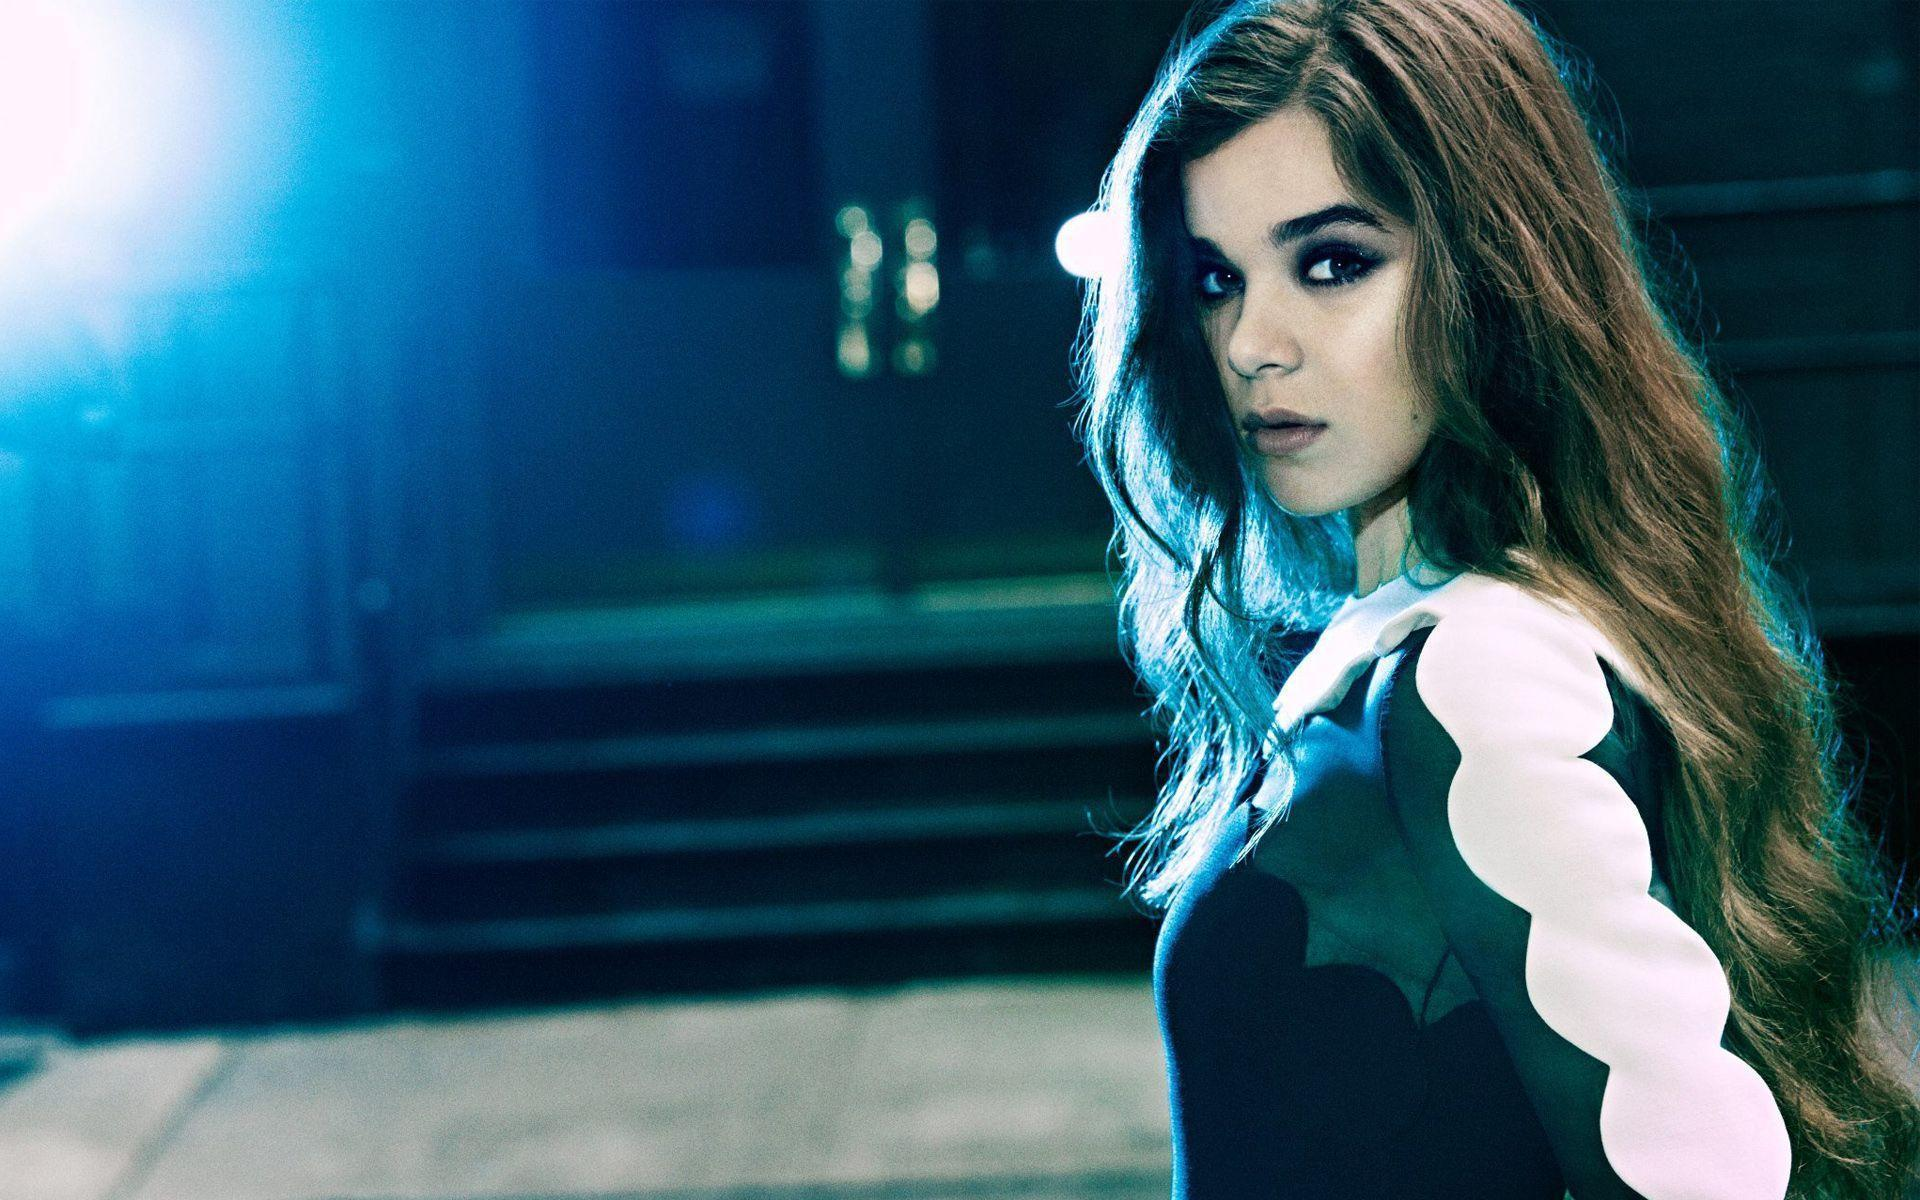 Hailee Steinfeld Wallpapers - Page 2 - HD Wallpapers